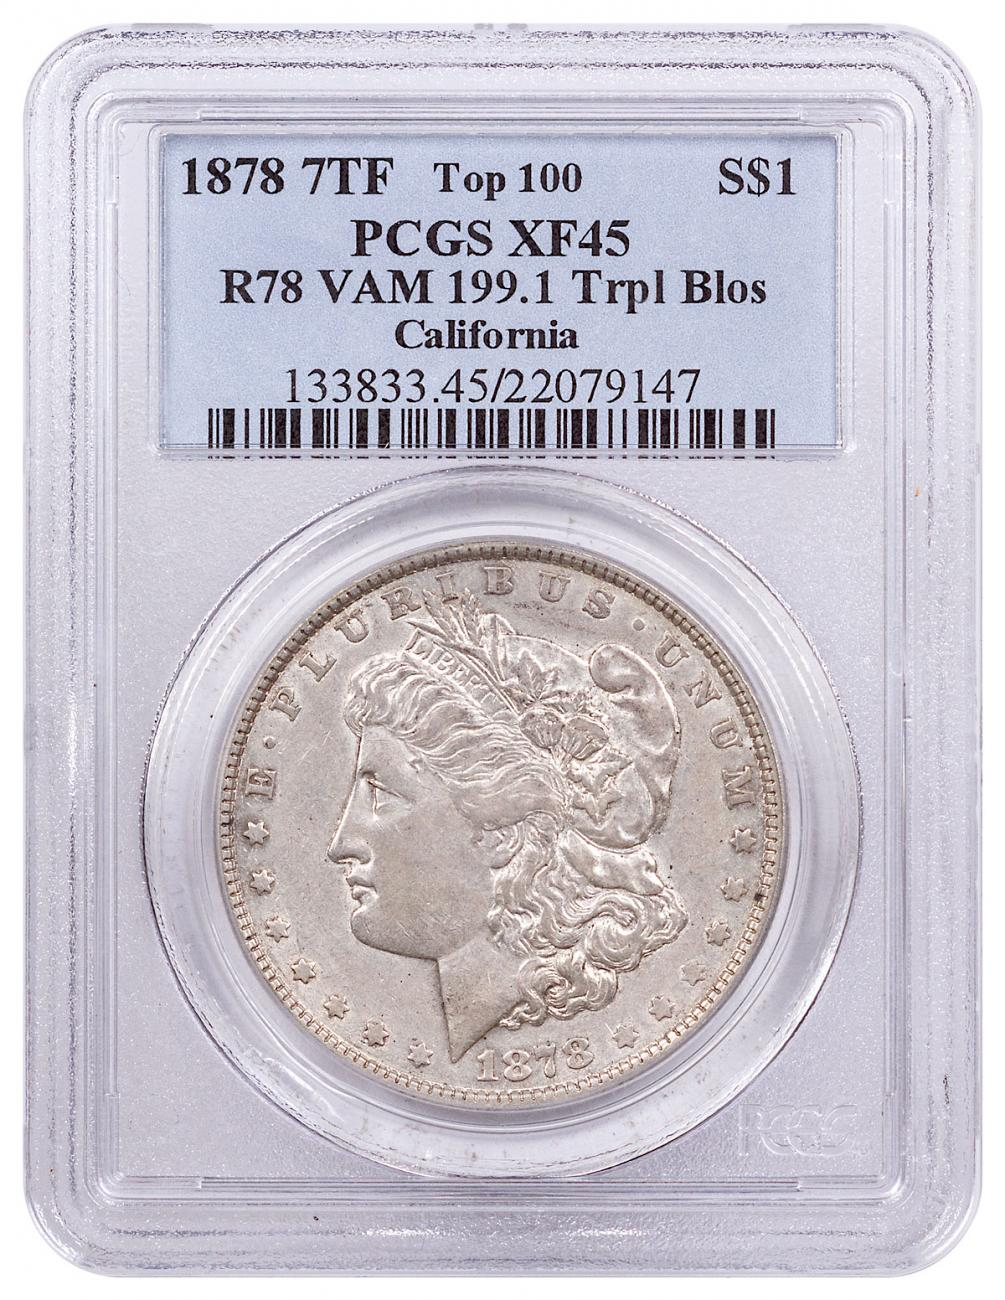 1878 Morgan Silver Dollar (7/8TF Weak) Top 100 PCGS XF45 R78 VAM-199.1 Trpl Blos California